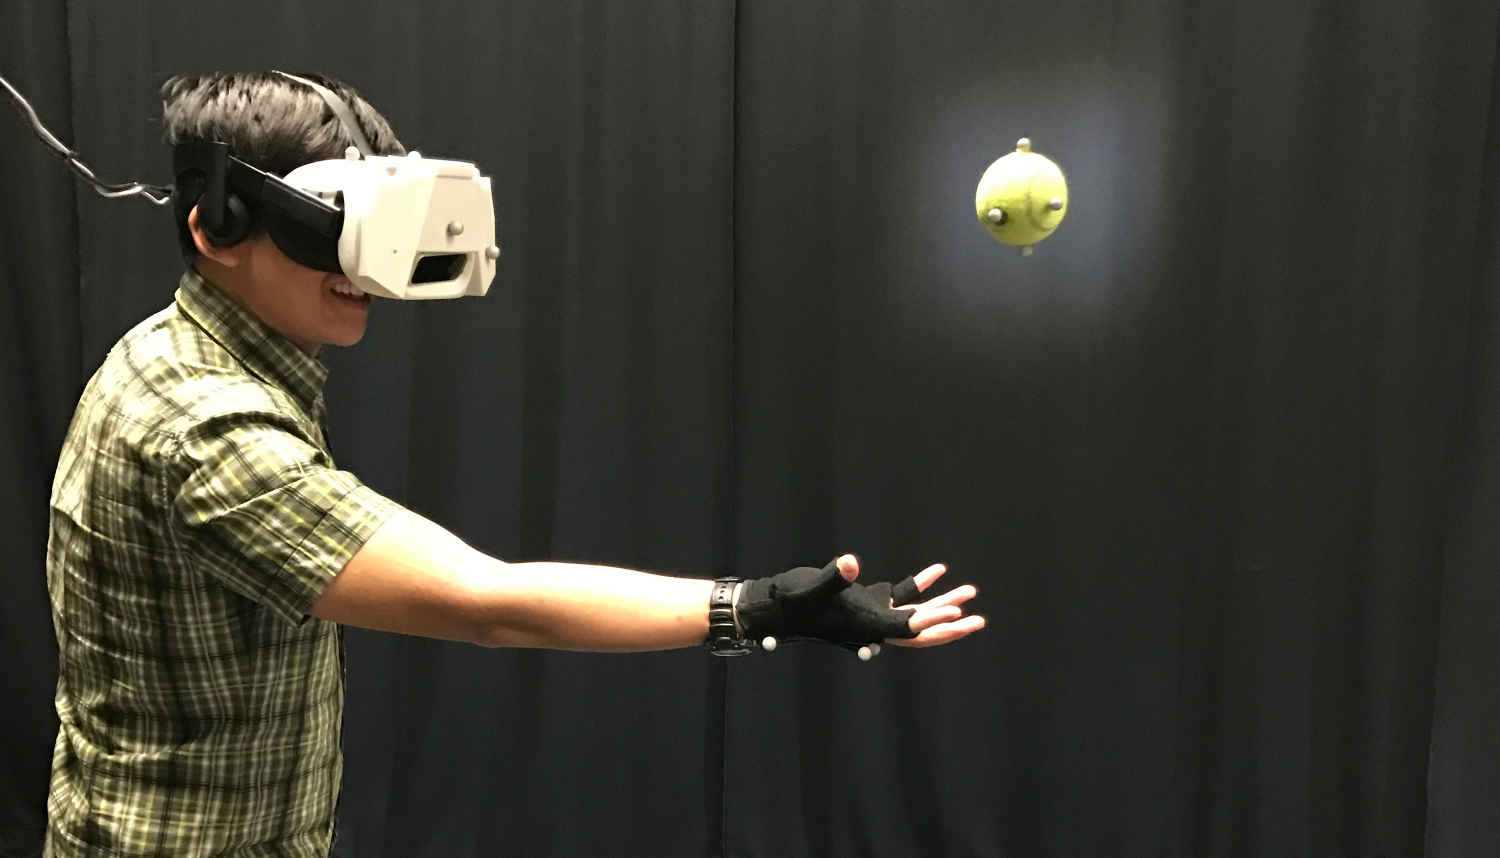 Disney software allows users to catch real balls in VR